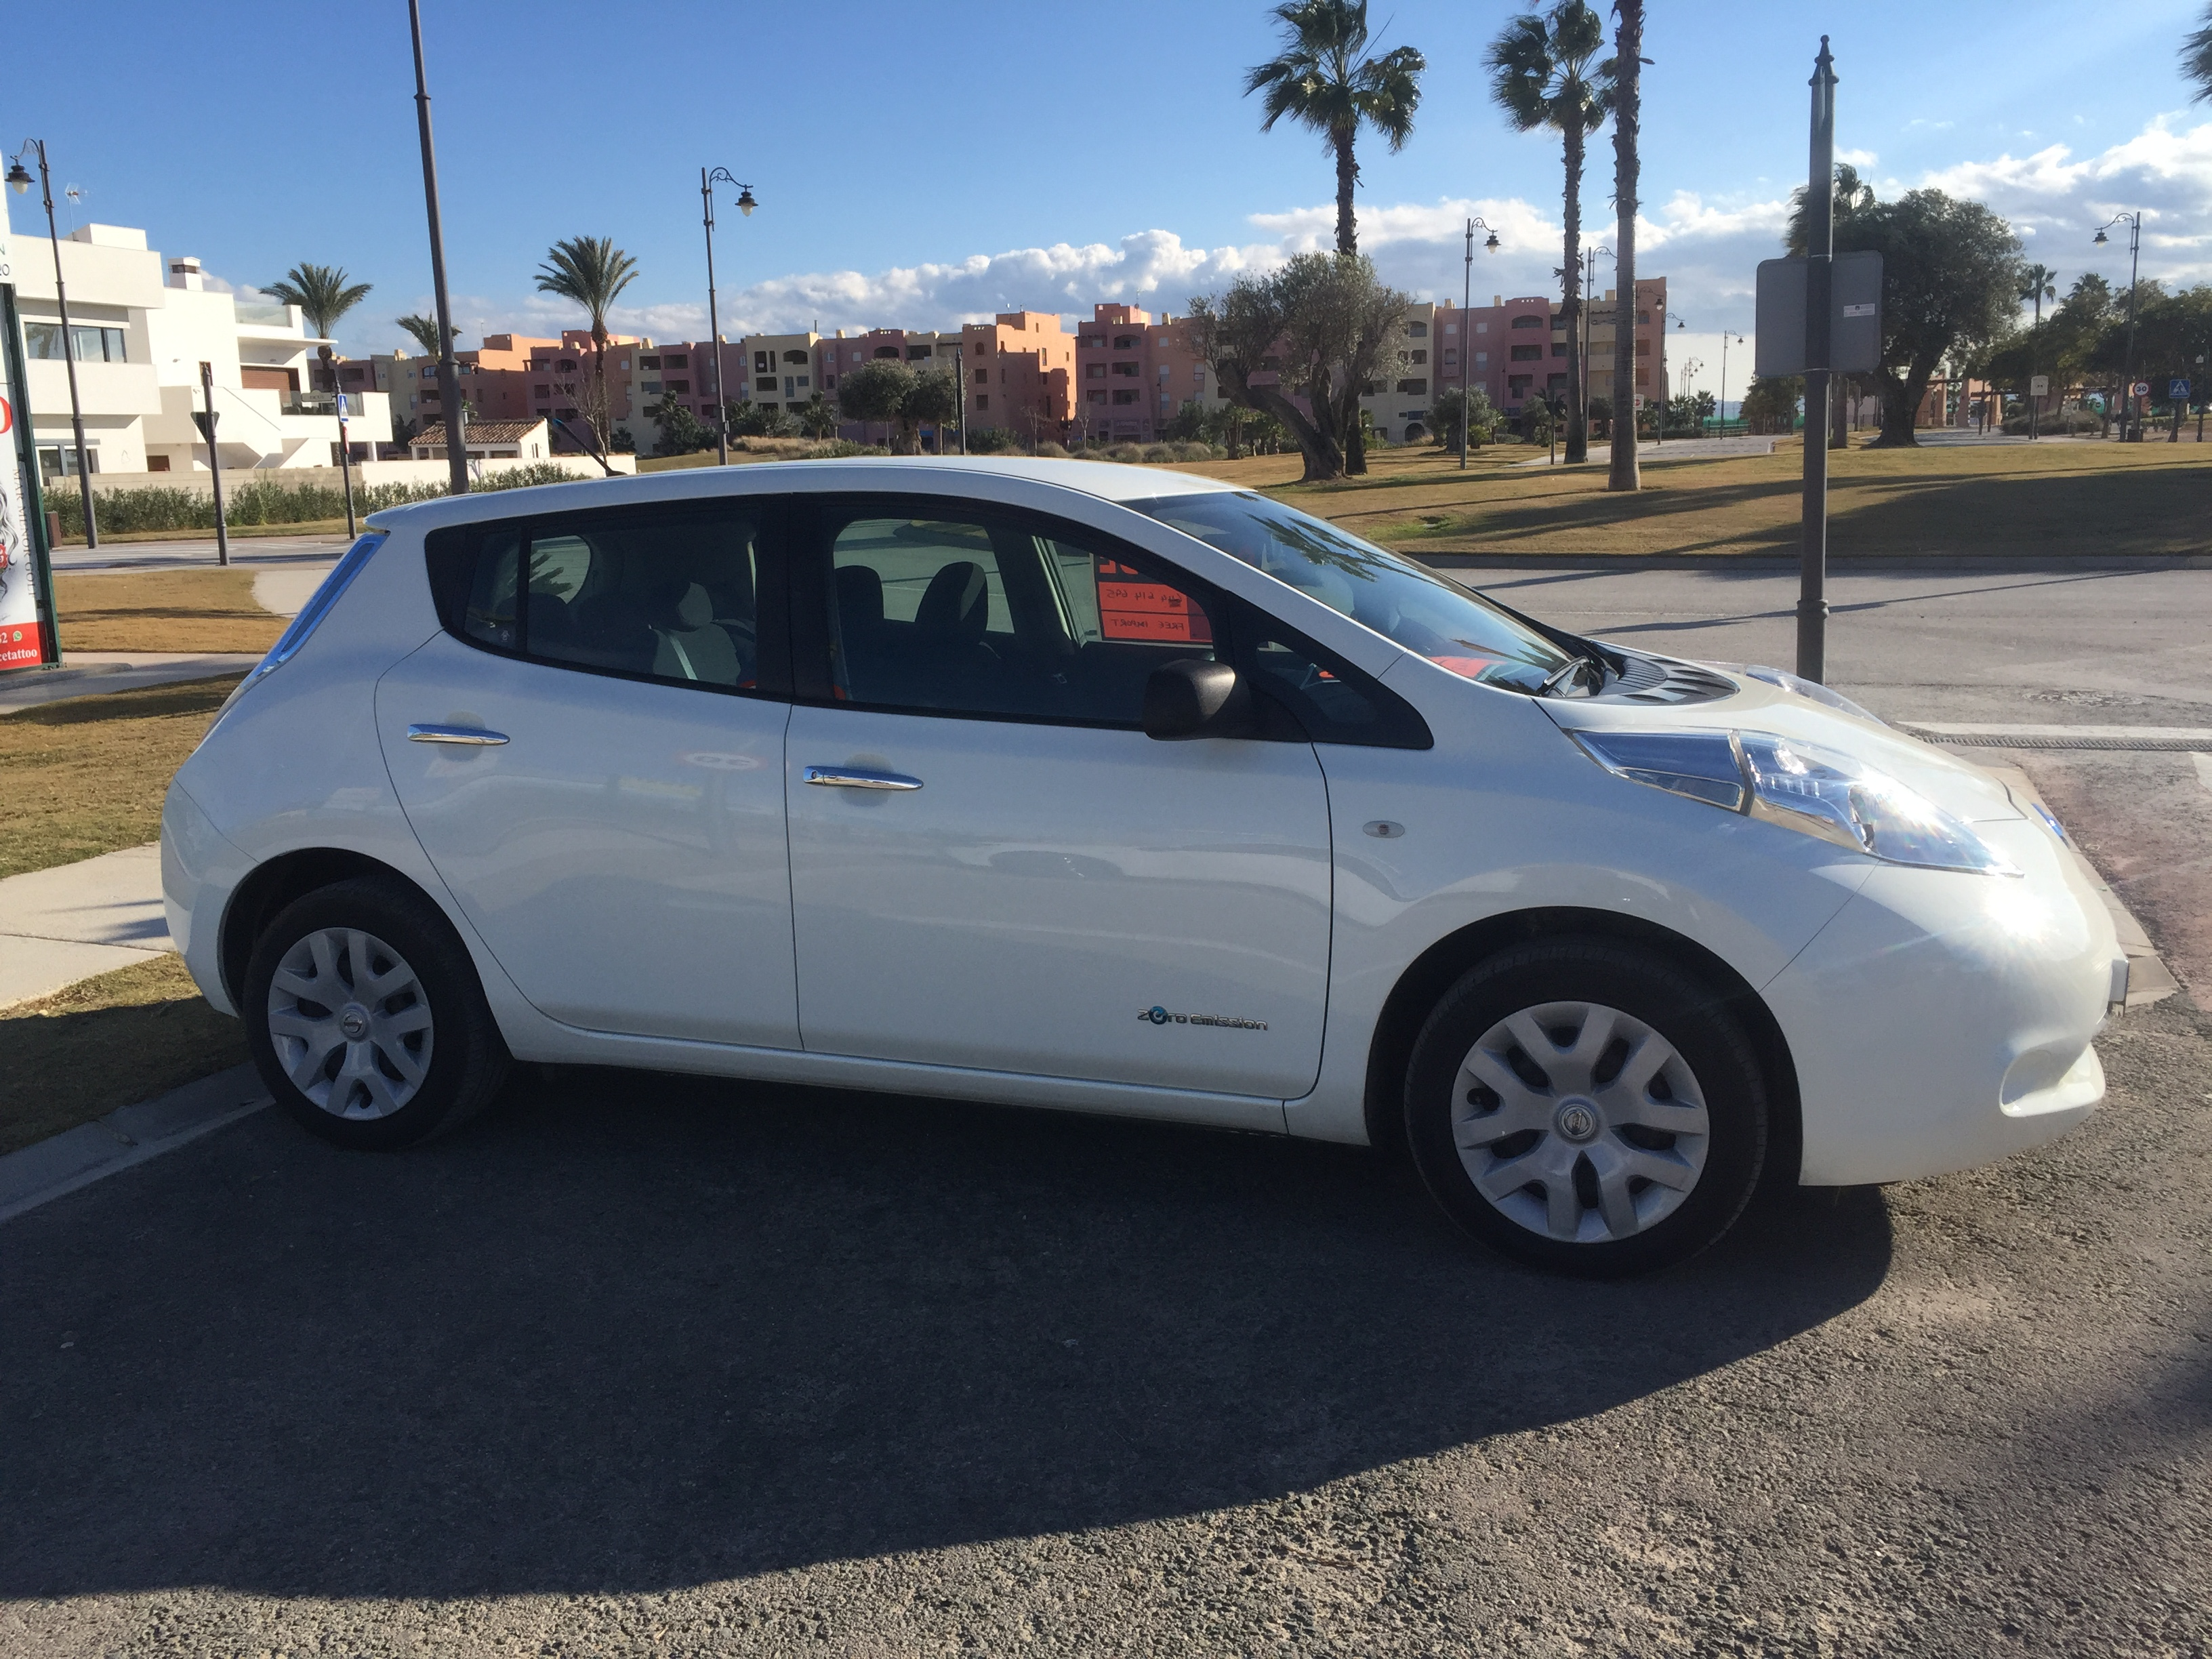 for sale nissan leaf electric car buy and sell items in benidorm benidorm forum costa. Black Bedroom Furniture Sets. Home Design Ideas